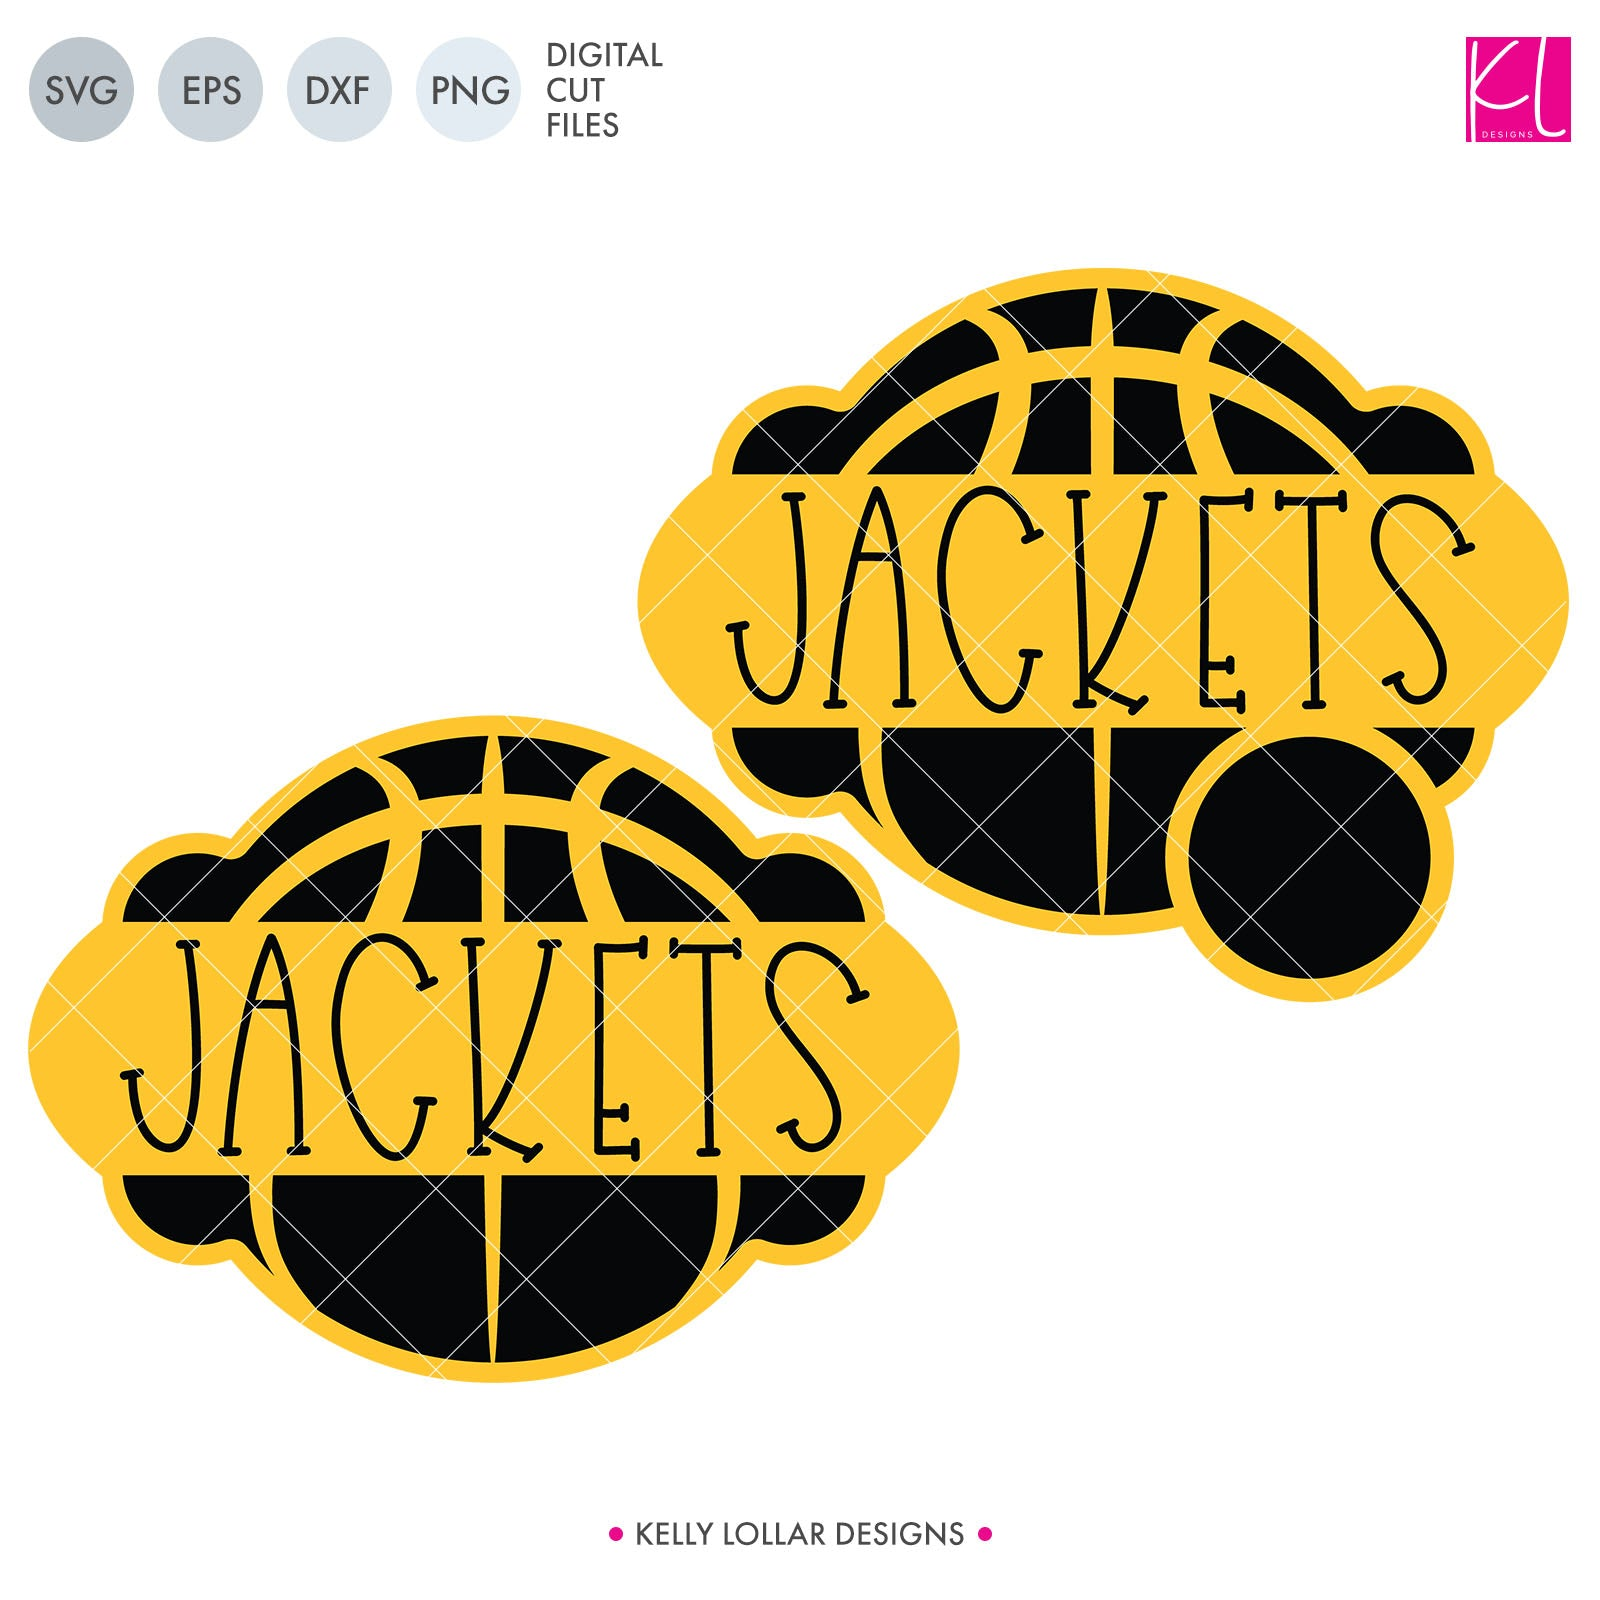 Jackets Basketball Bundle | SVG DXF EPS PNG Cut Files It's basketball season, so you Jacket Basketball crafter know what that means ... new spirit shirts! This fourteen-piece bundle includes a little something for everyone - from girly and cute